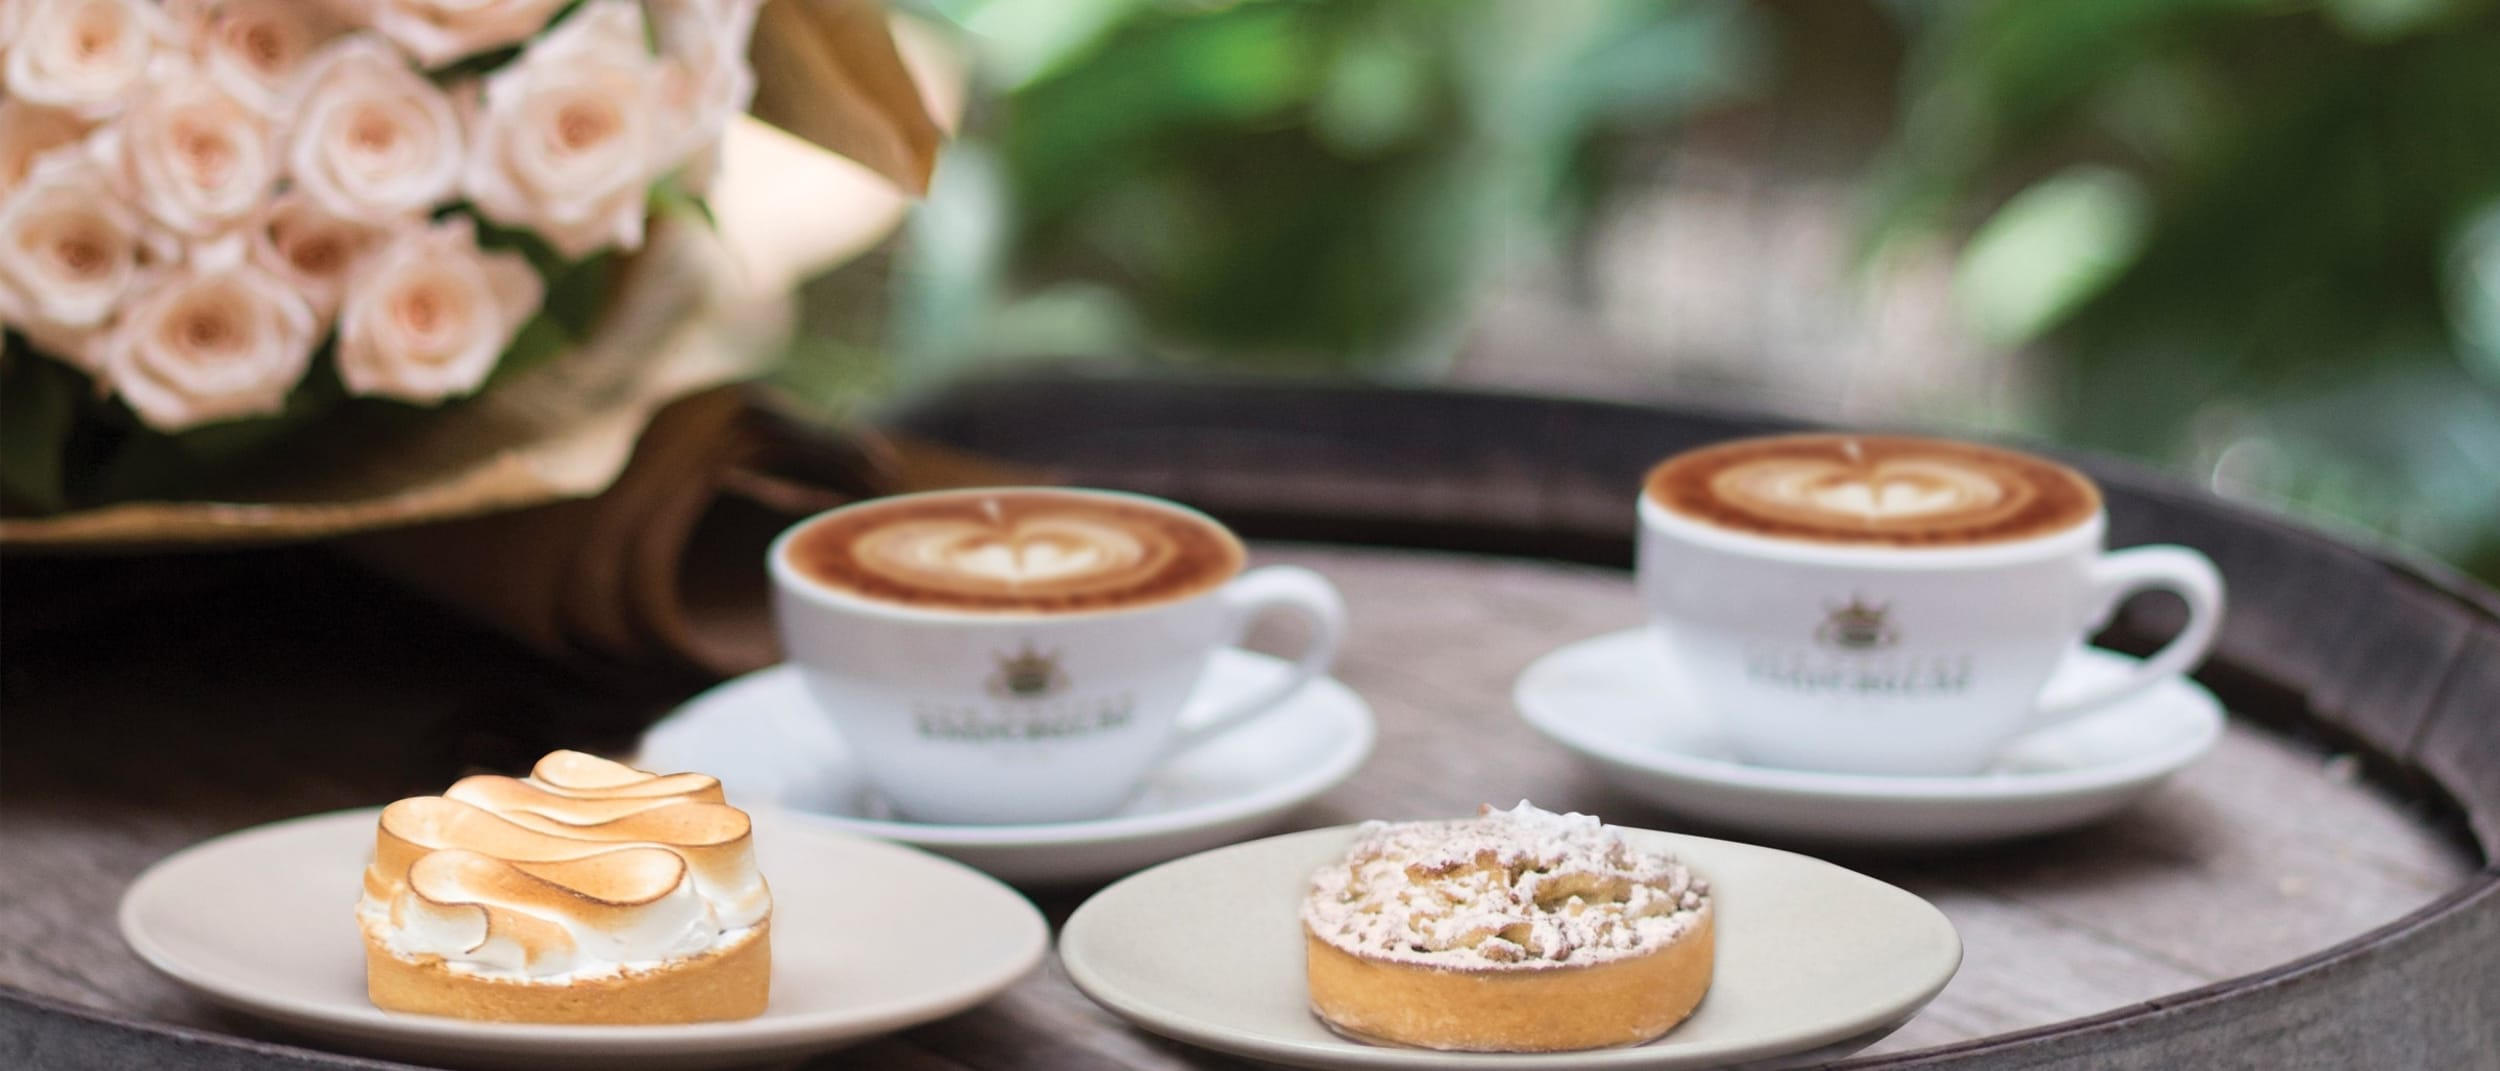 The Coffee Emporium: coffee and tart for $7